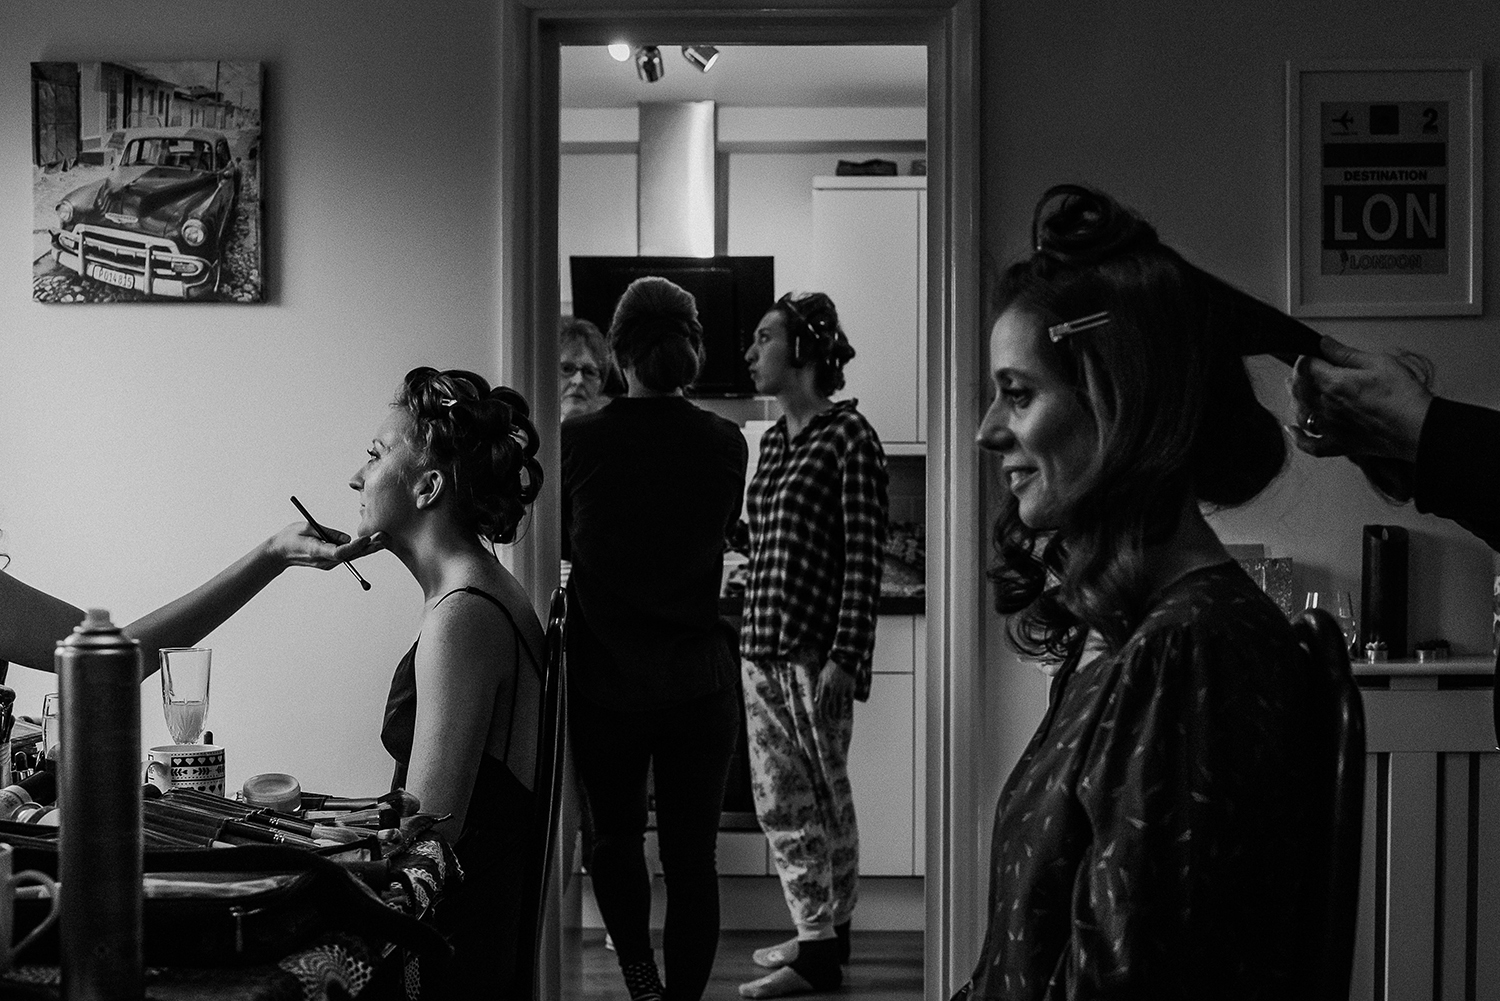 BW photo of bridal prep. Bride and bridesmaids on either side of the frame with friends in the centre framed by the kitchen door